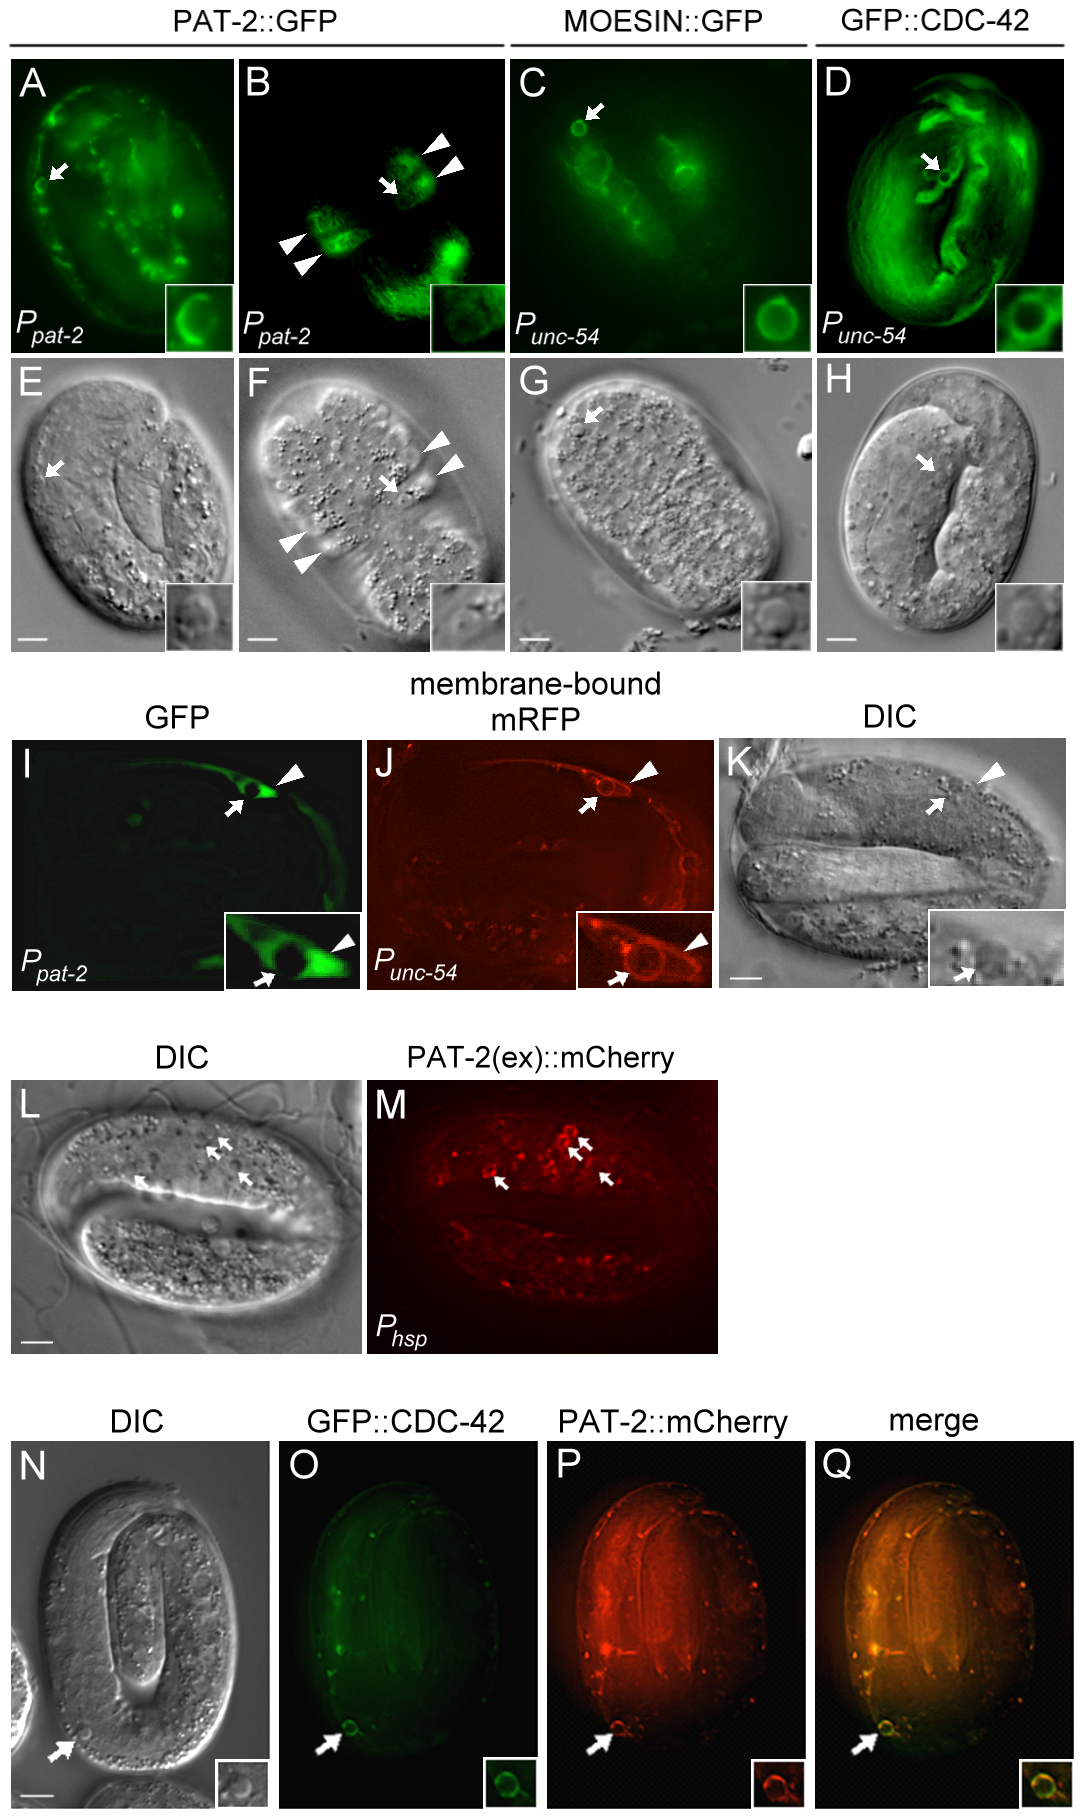 PAT-2 is strongly expressed in muscle cells and clusters around apoptotic cells.